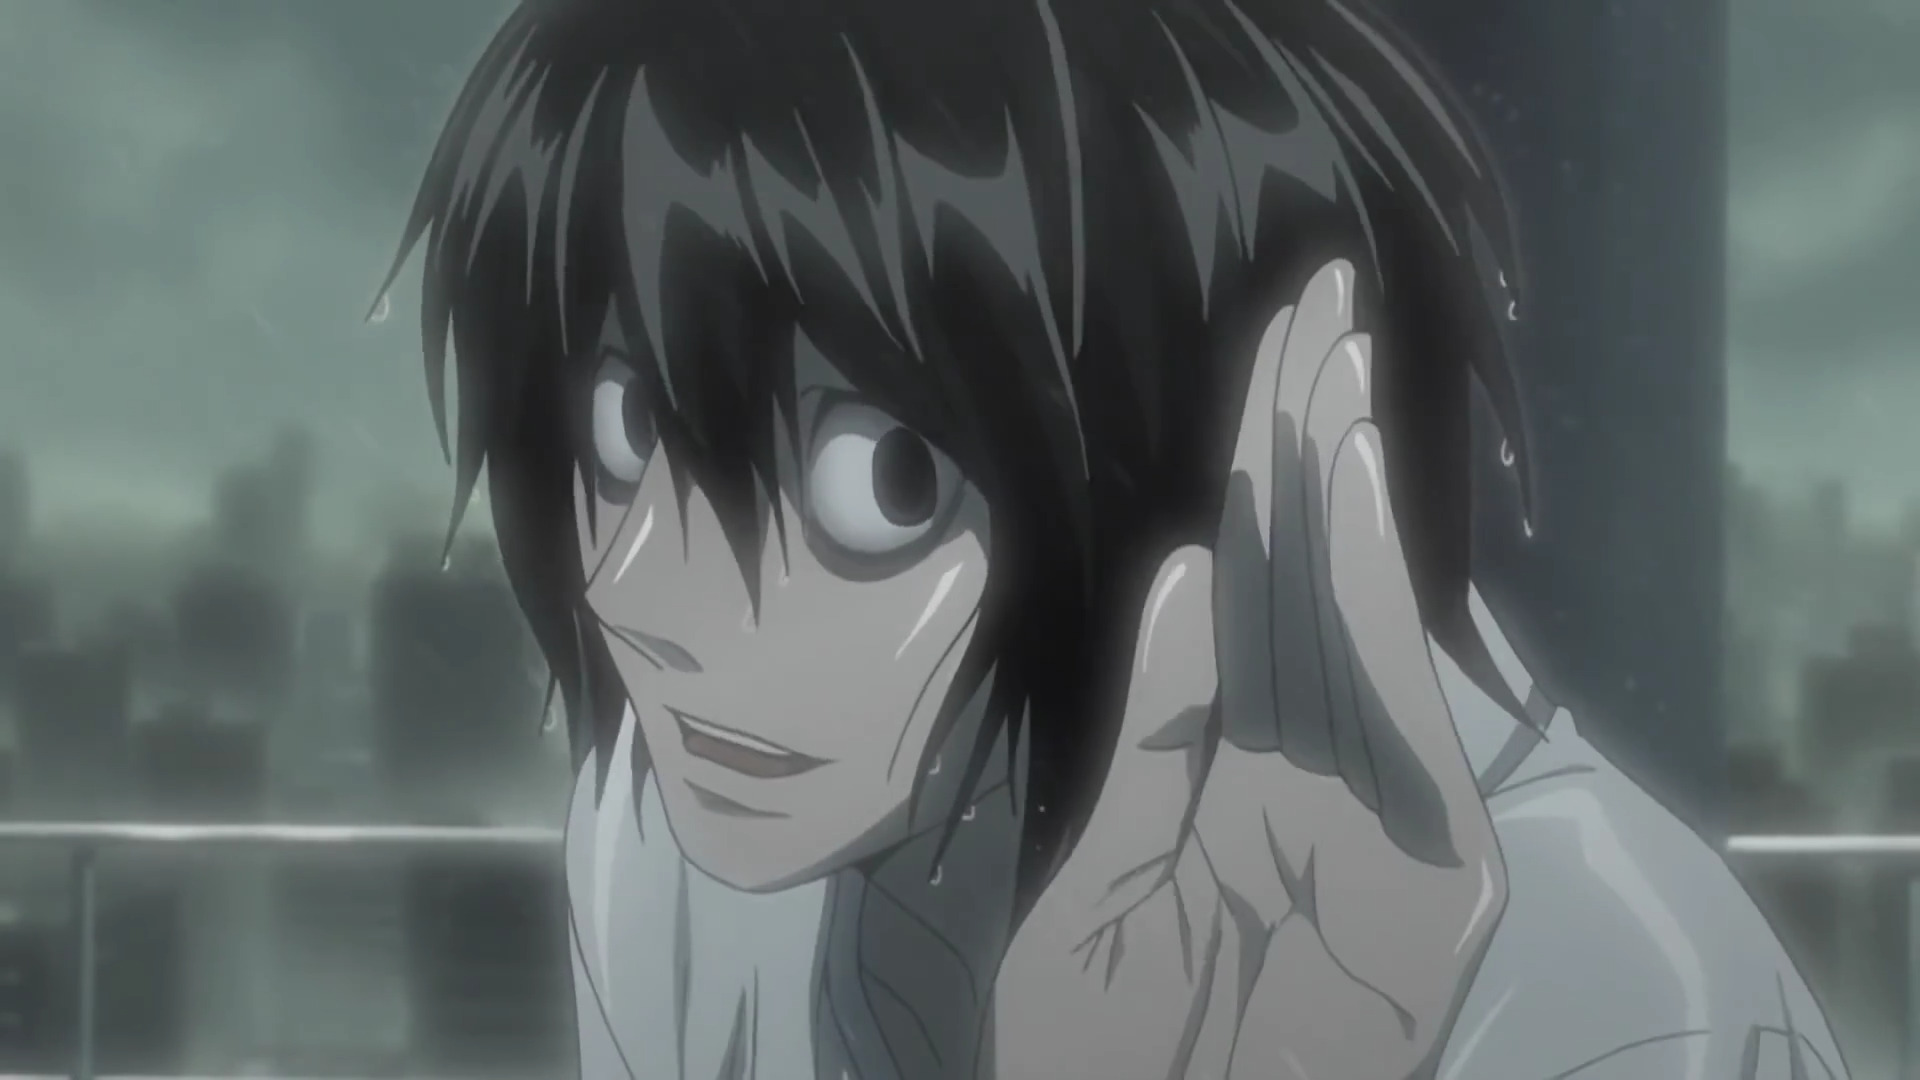 File:Say-wut-death-note-2219769-640-360.jpg